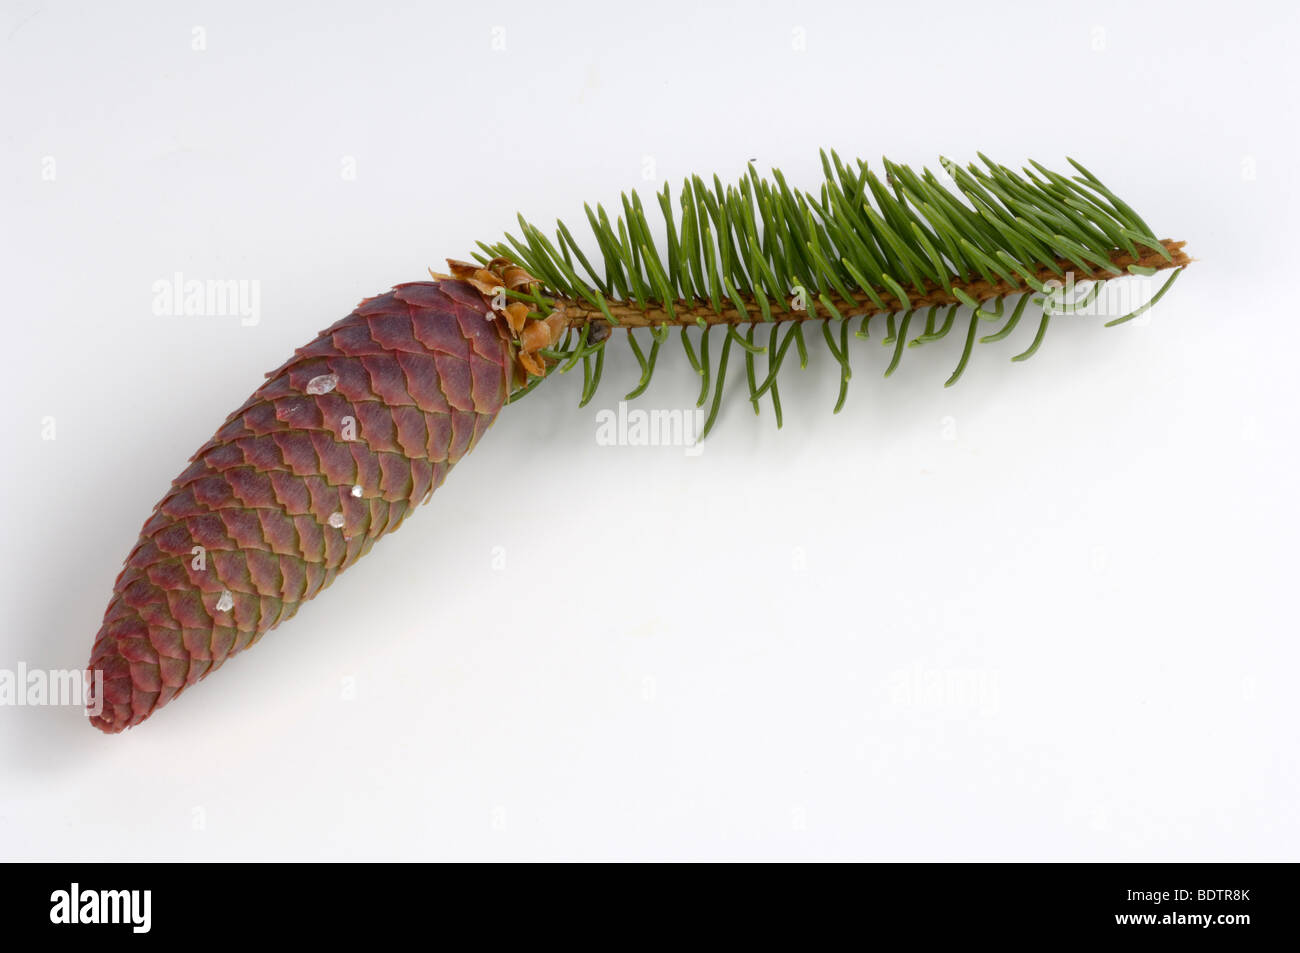 Norway Spruce, cone (Picea abies) cut out - Stock Image